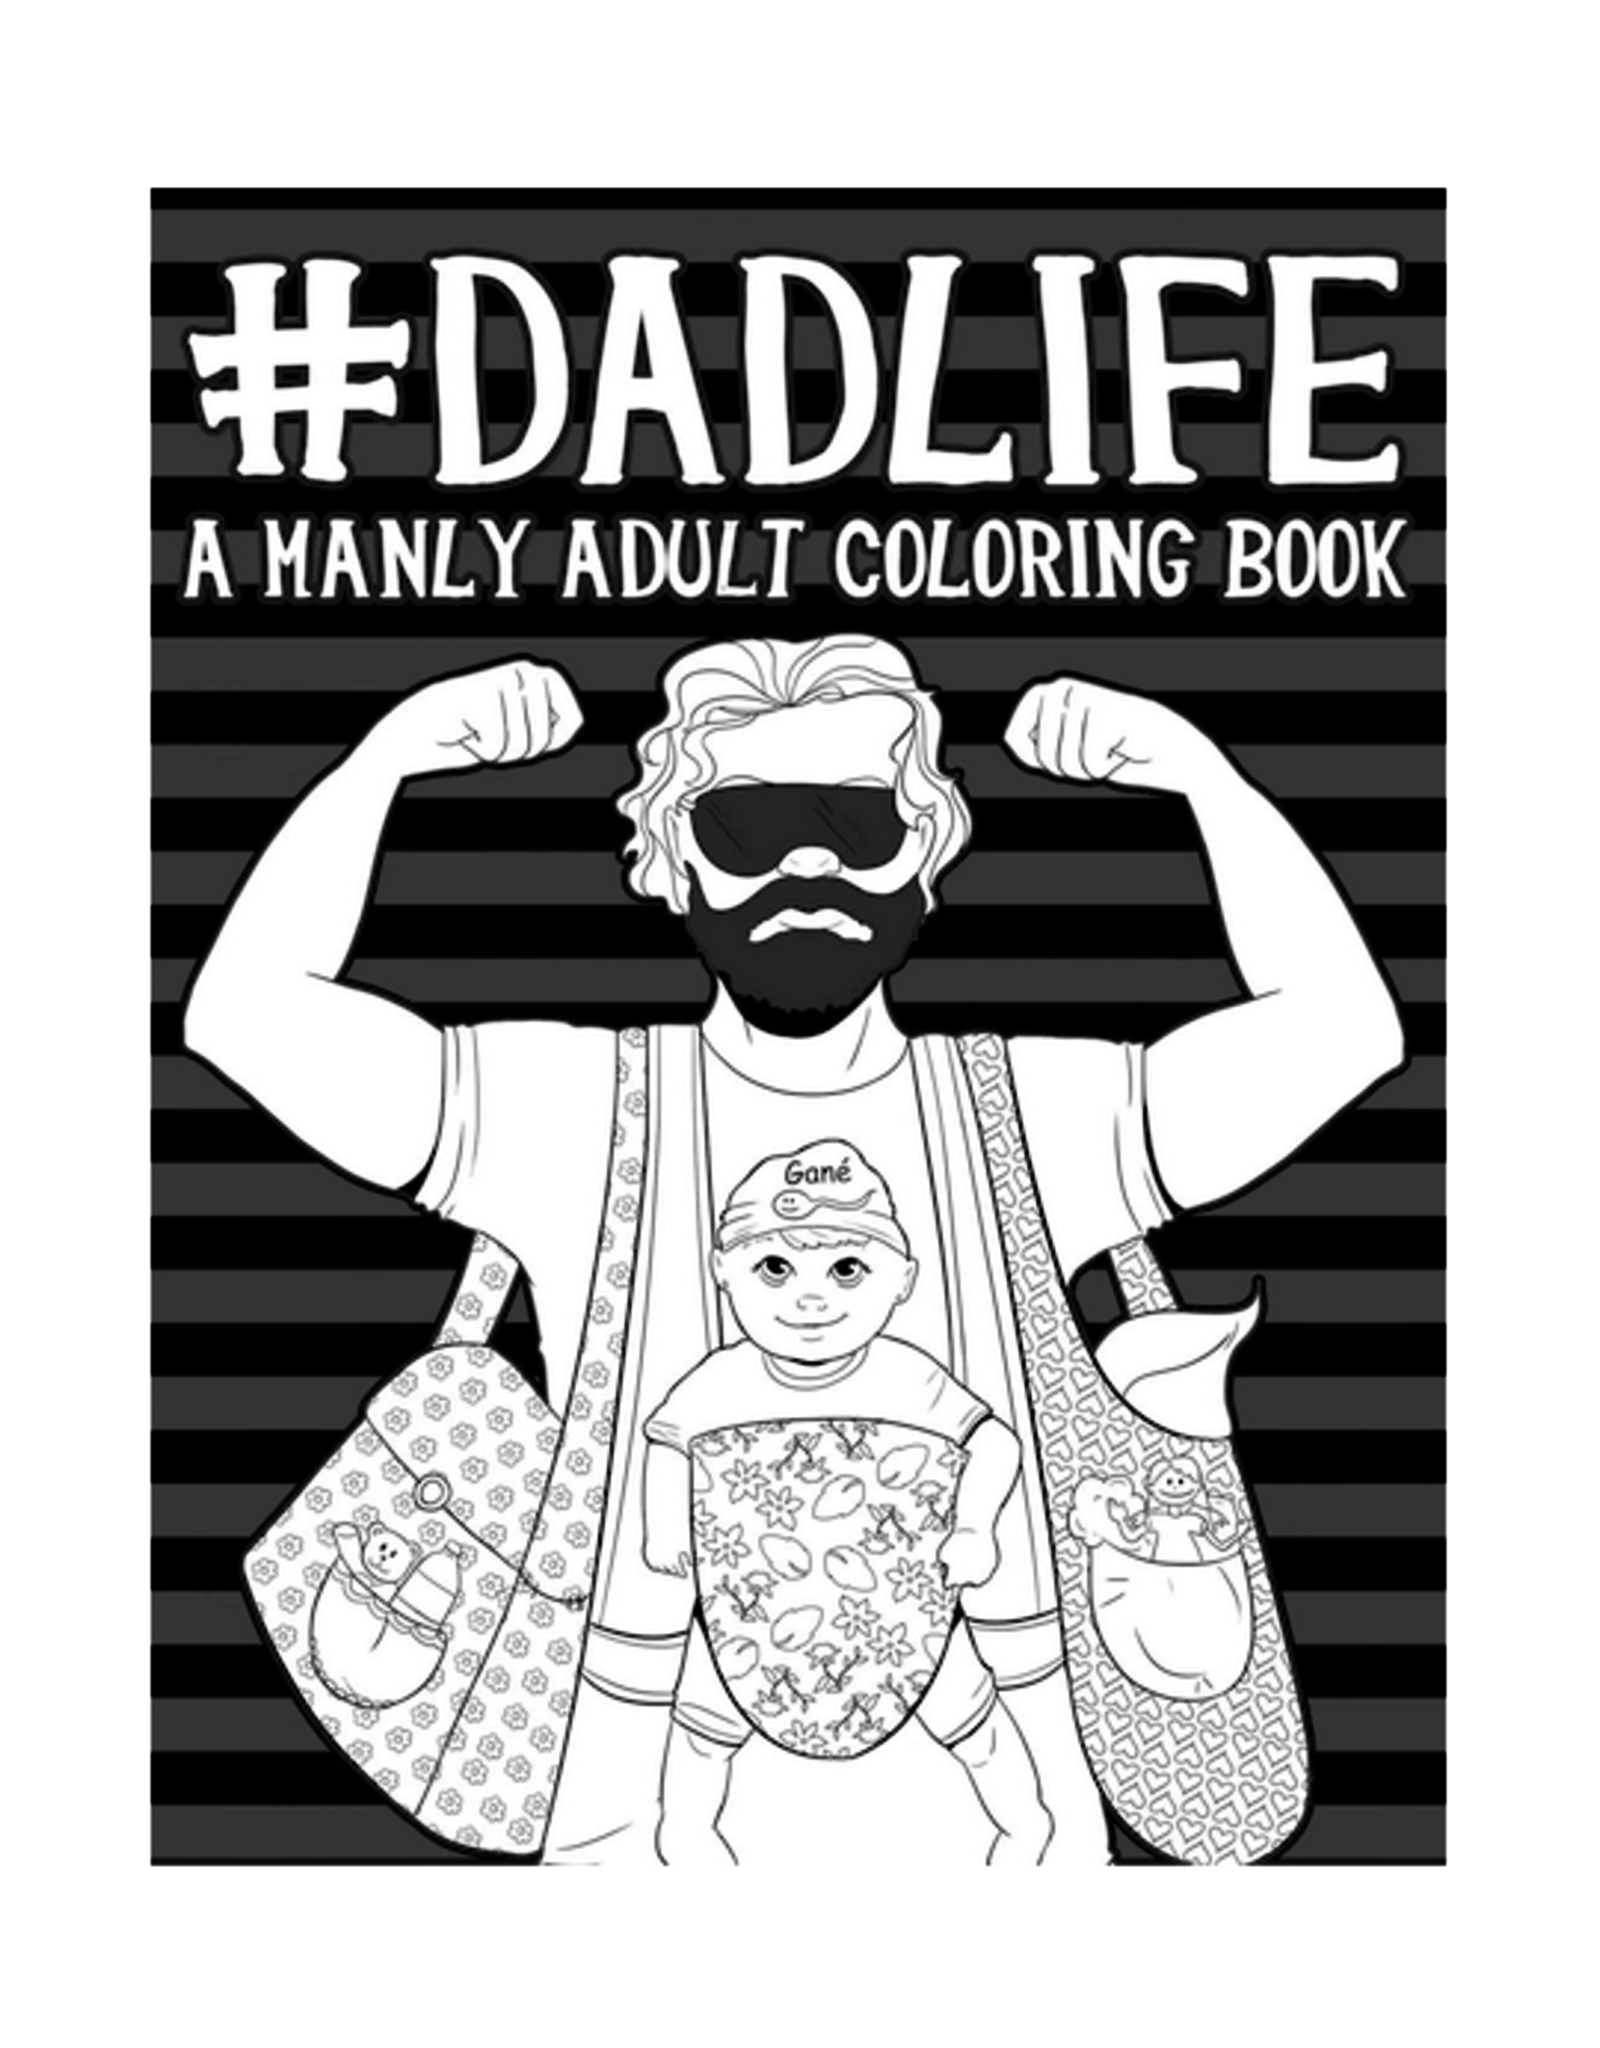 Papeterie Bleu Colouring Book for Adults, #DadLife